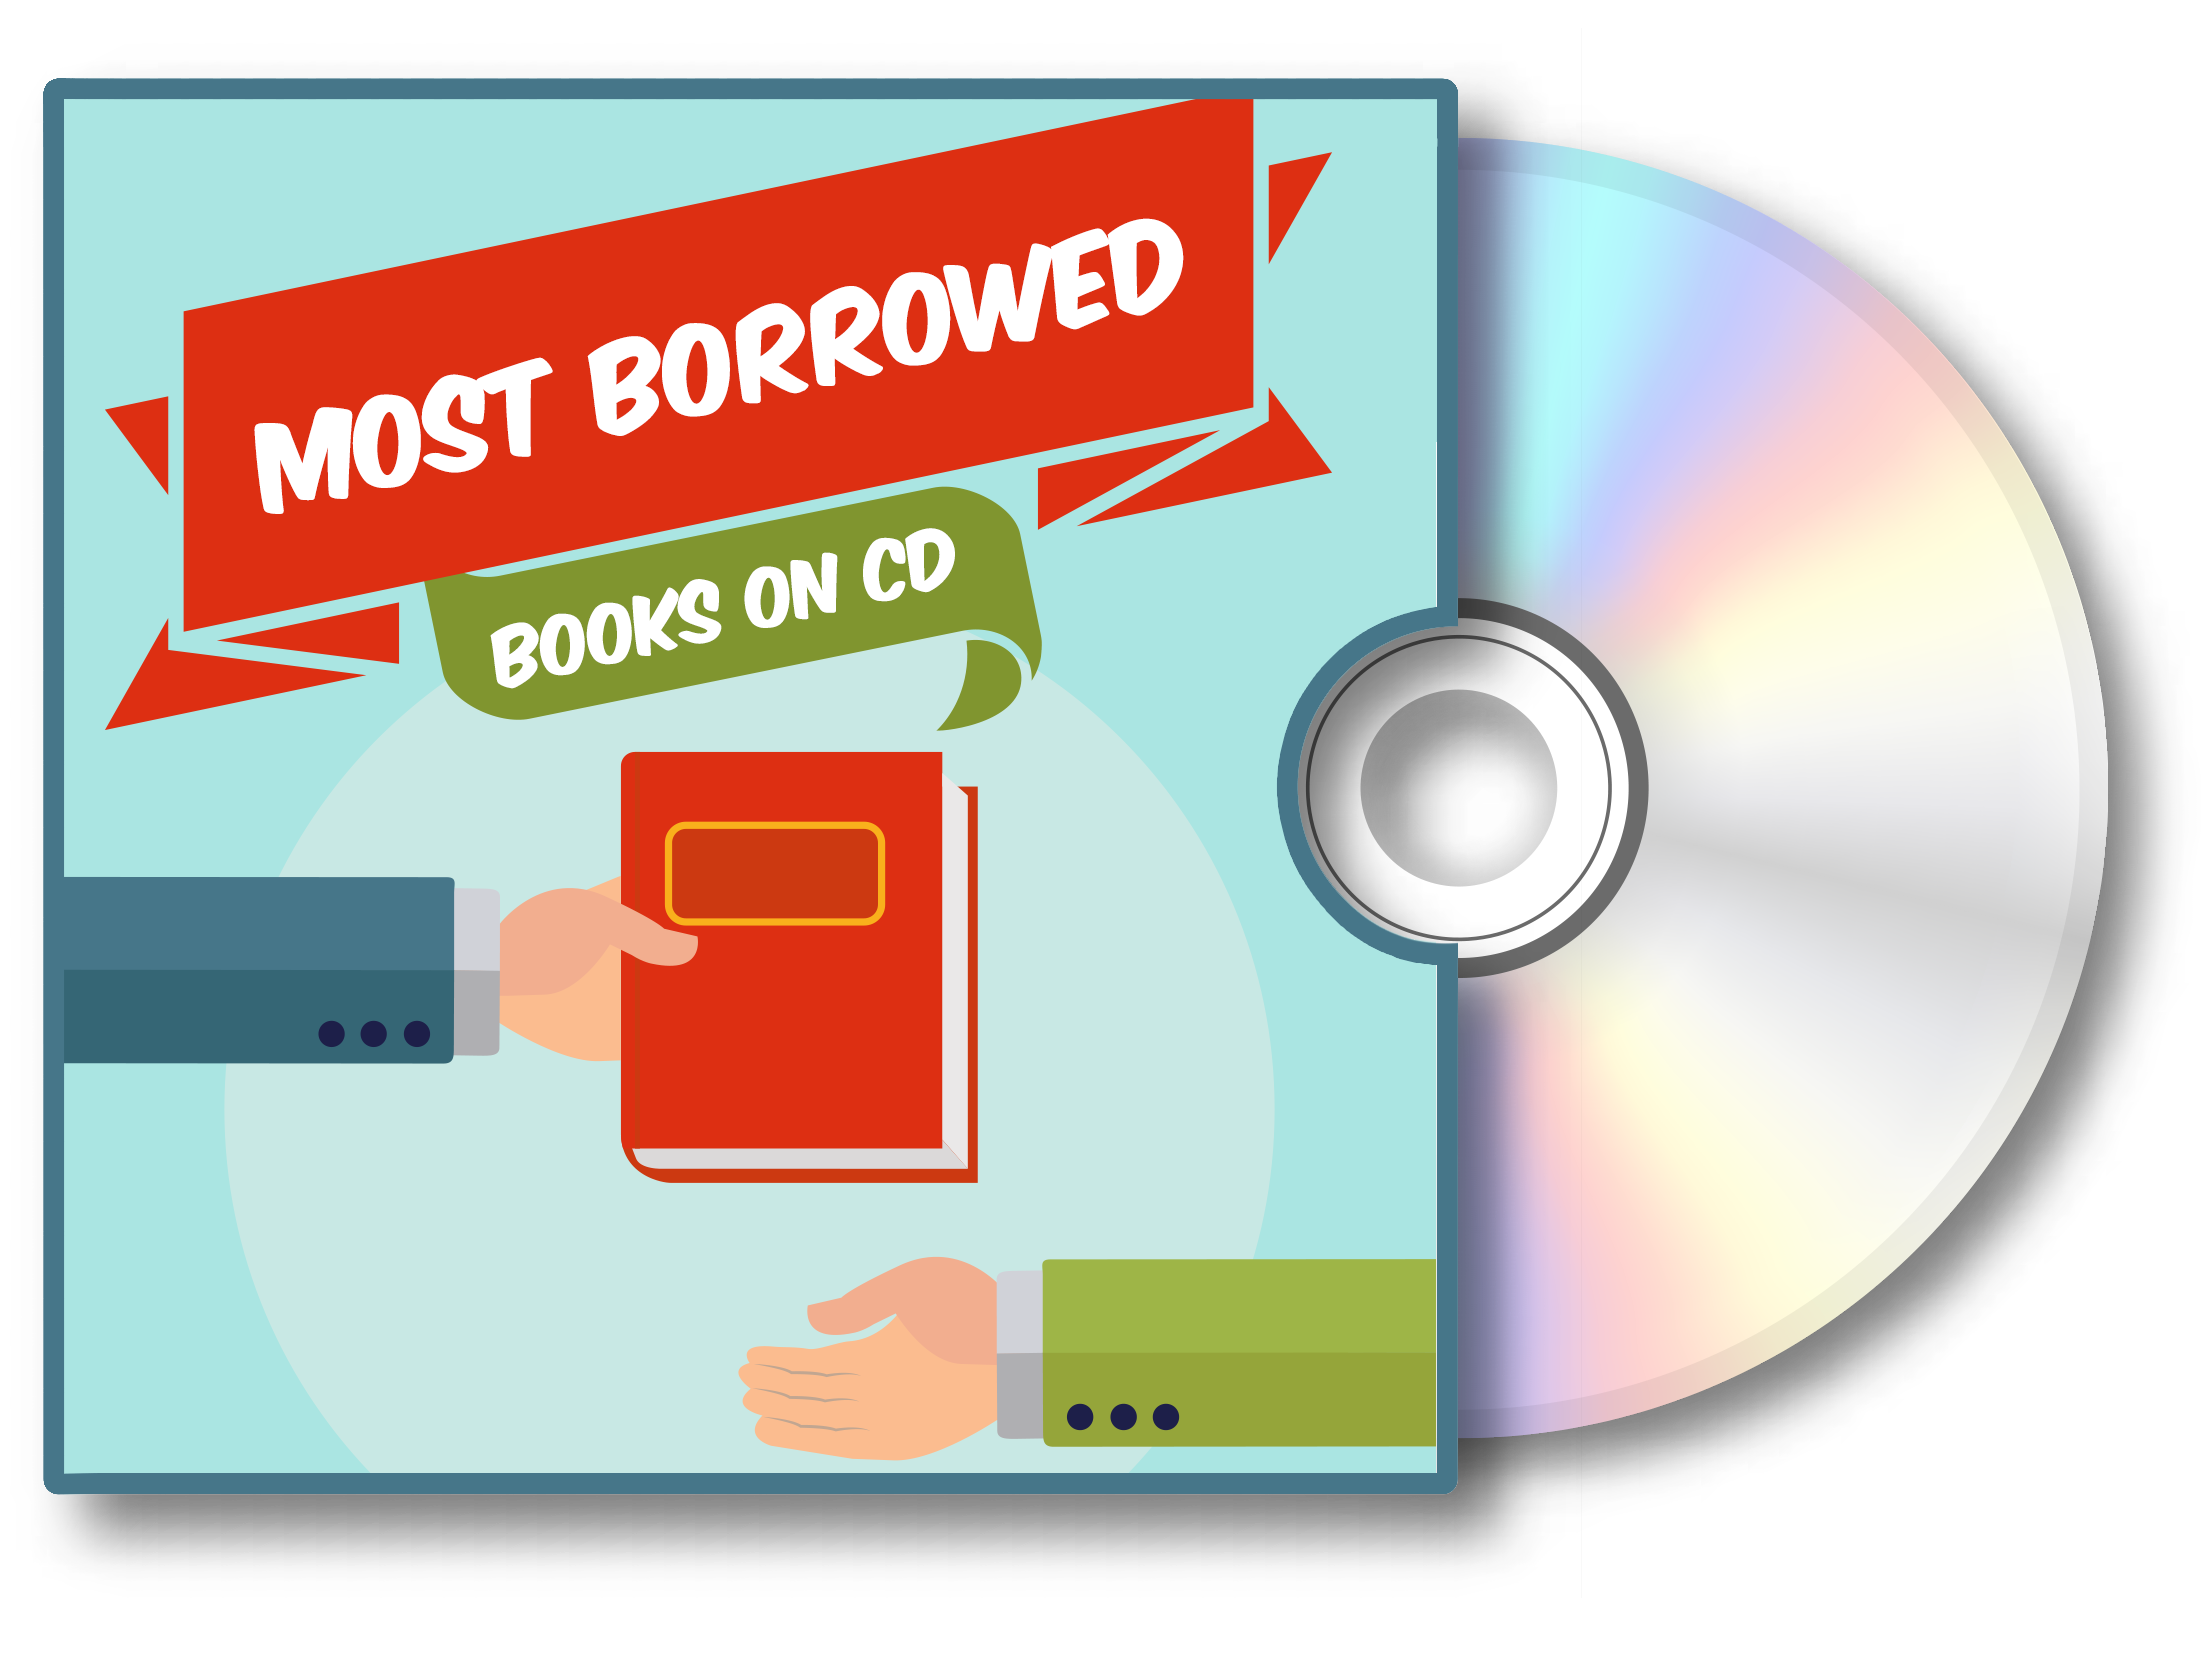 Visit the Most Borrowed Books on CD audiobook Bookletter